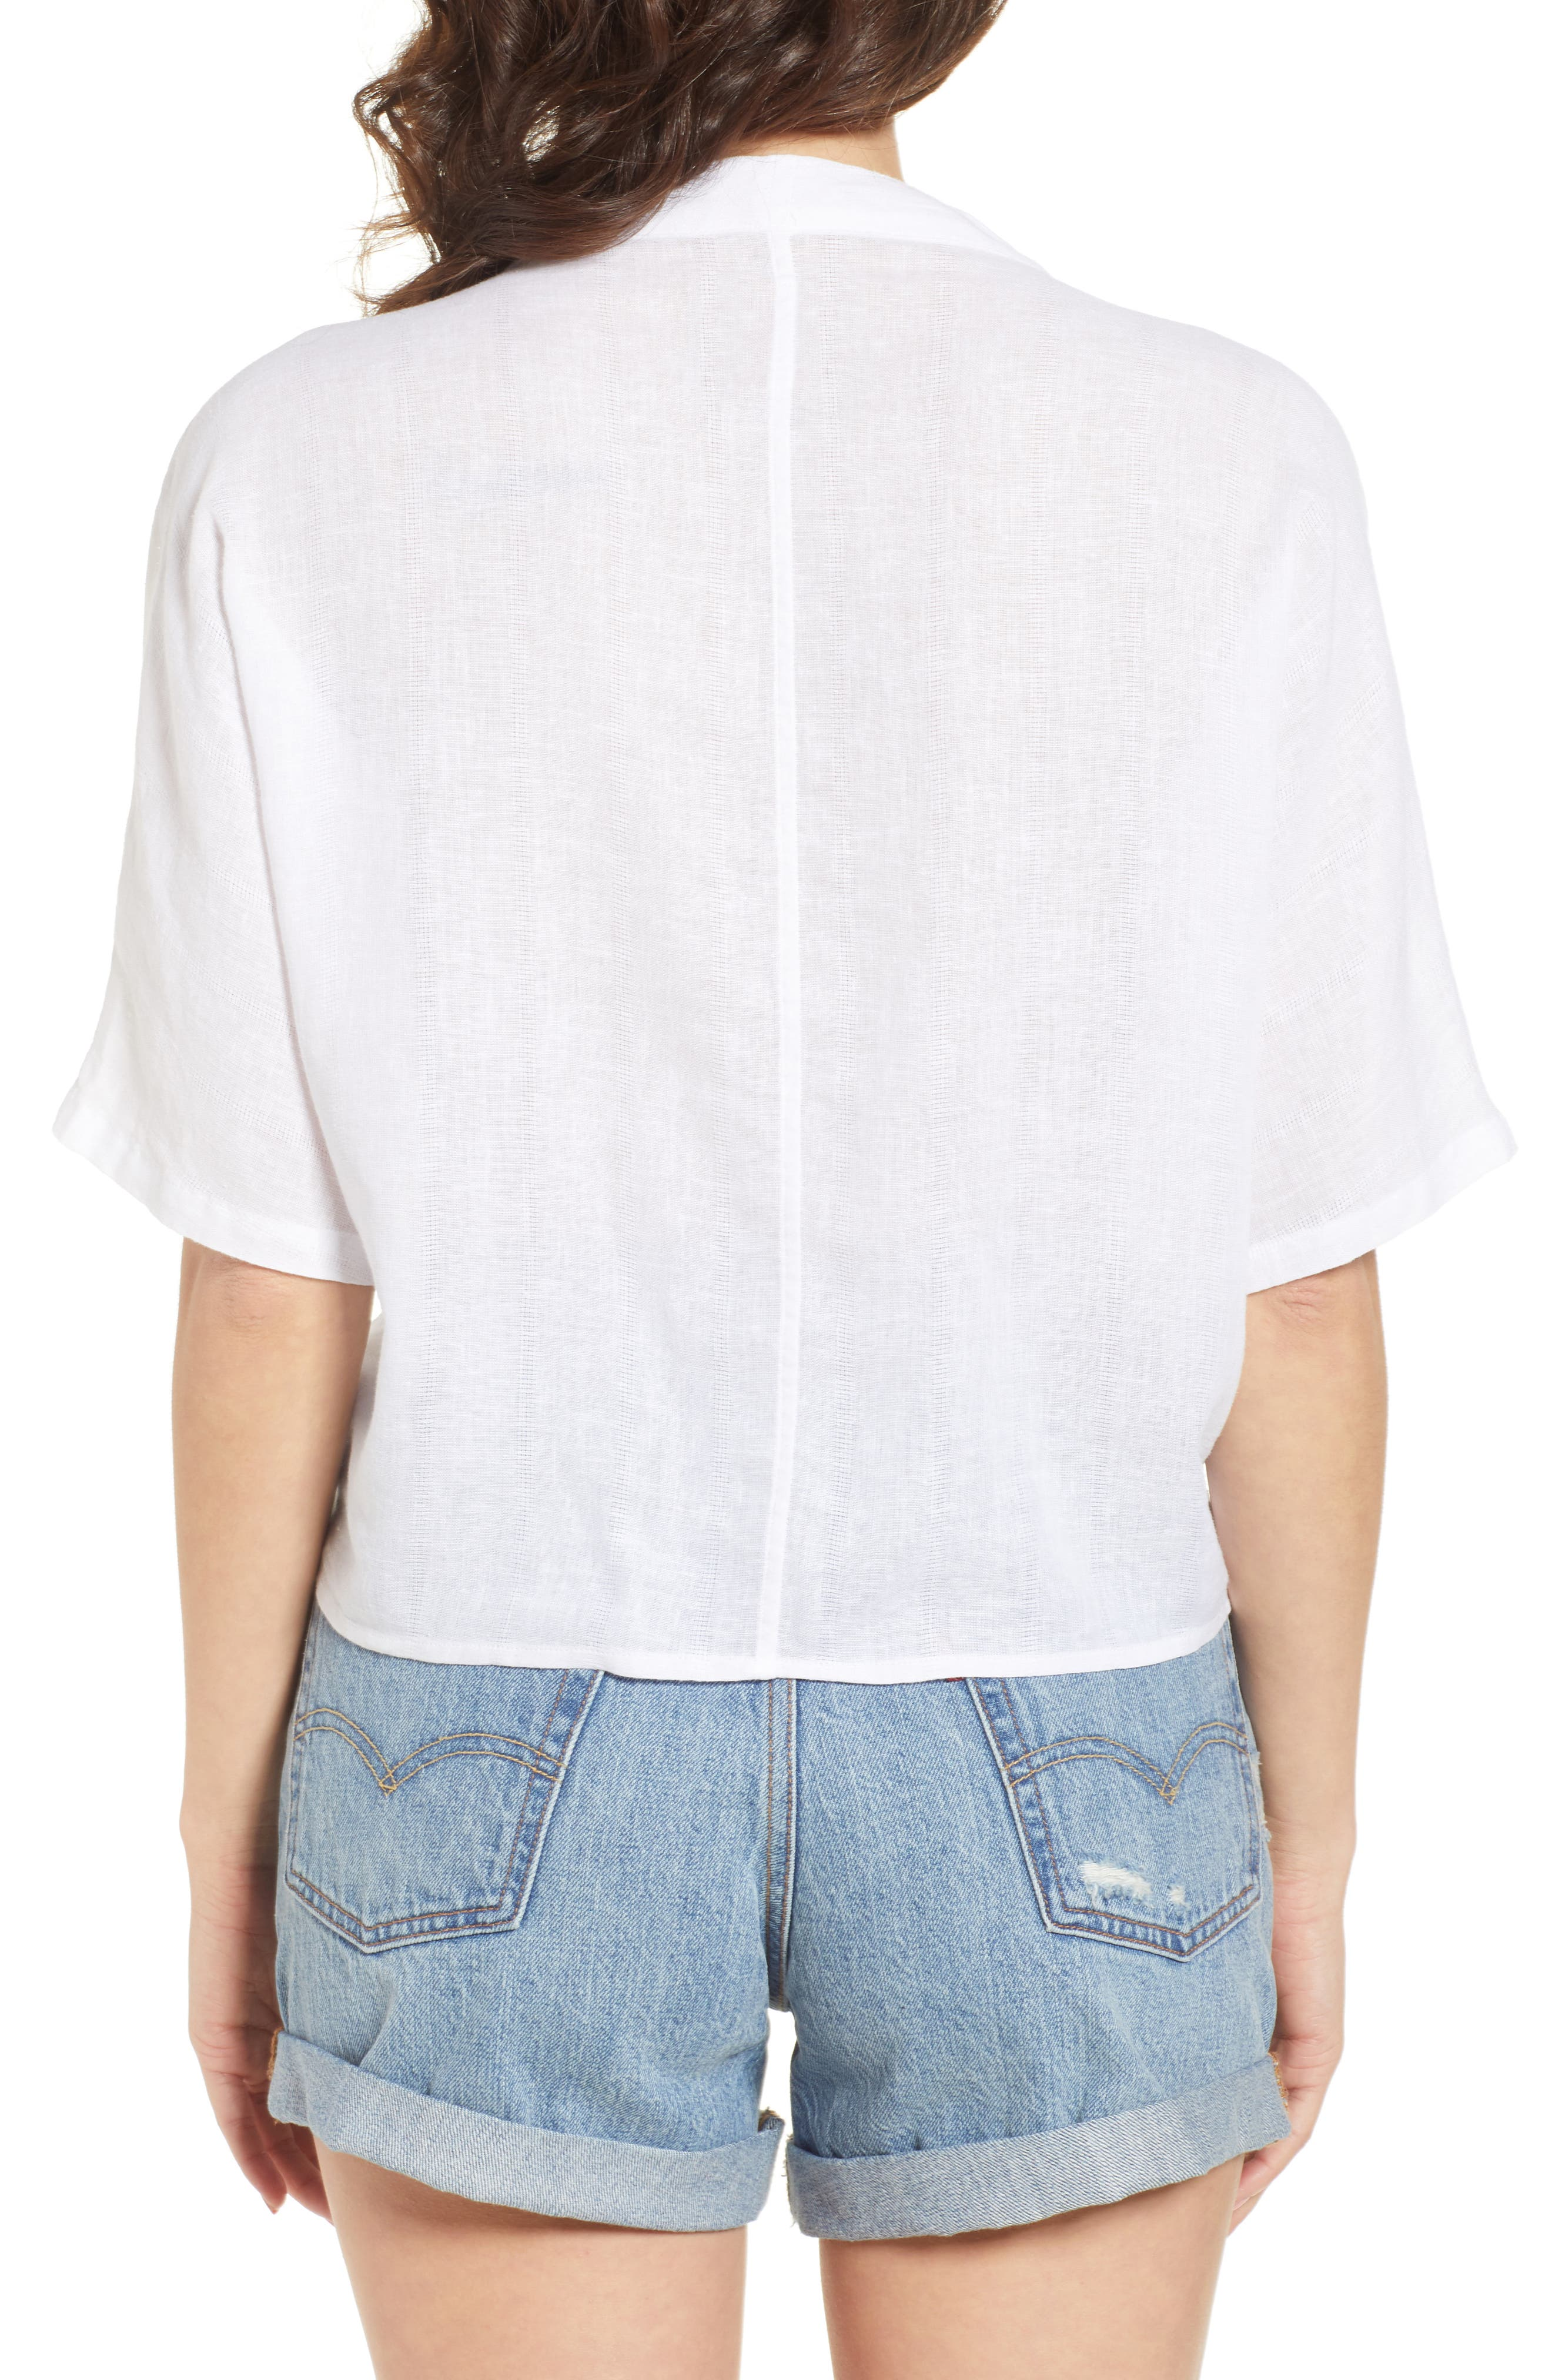 Thea Embroidered Tie Front Crop Top,                             Alternate thumbnail 2, color,                             142